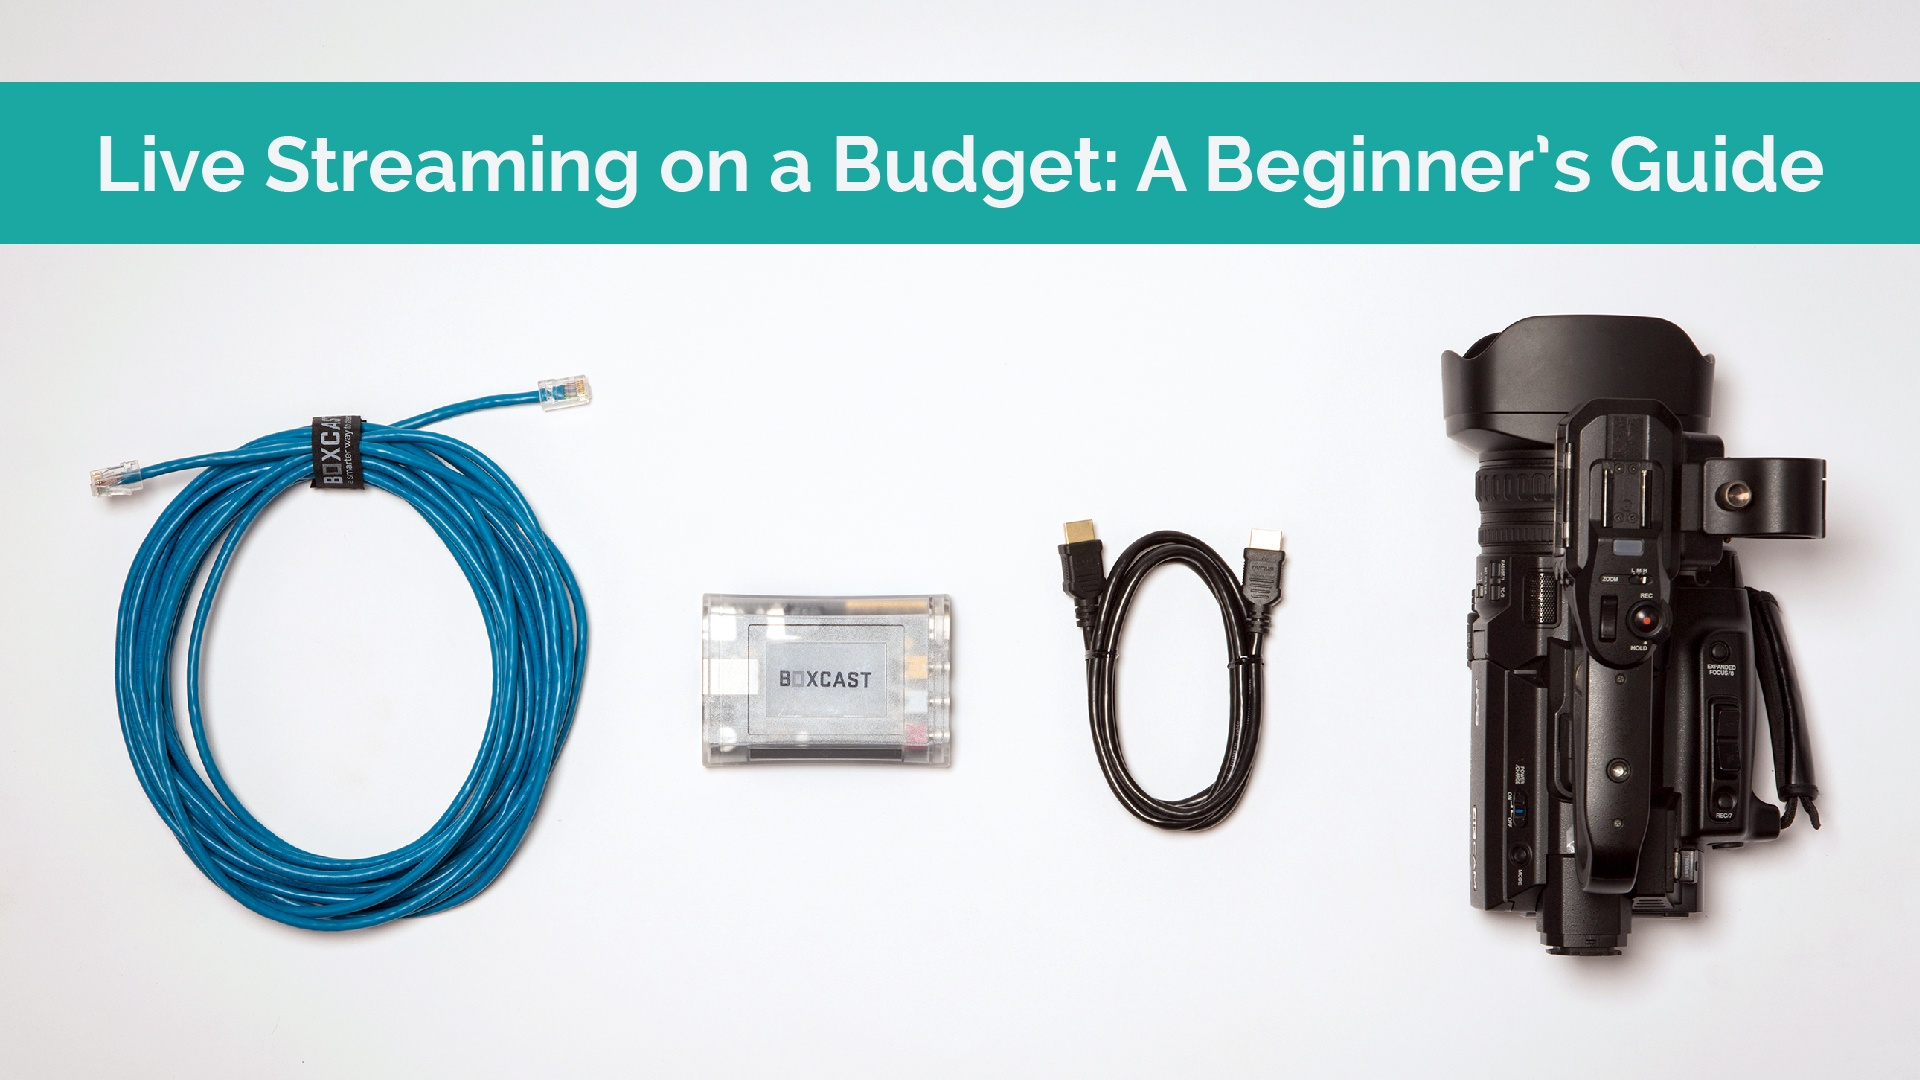 Live Streaming on a Budget